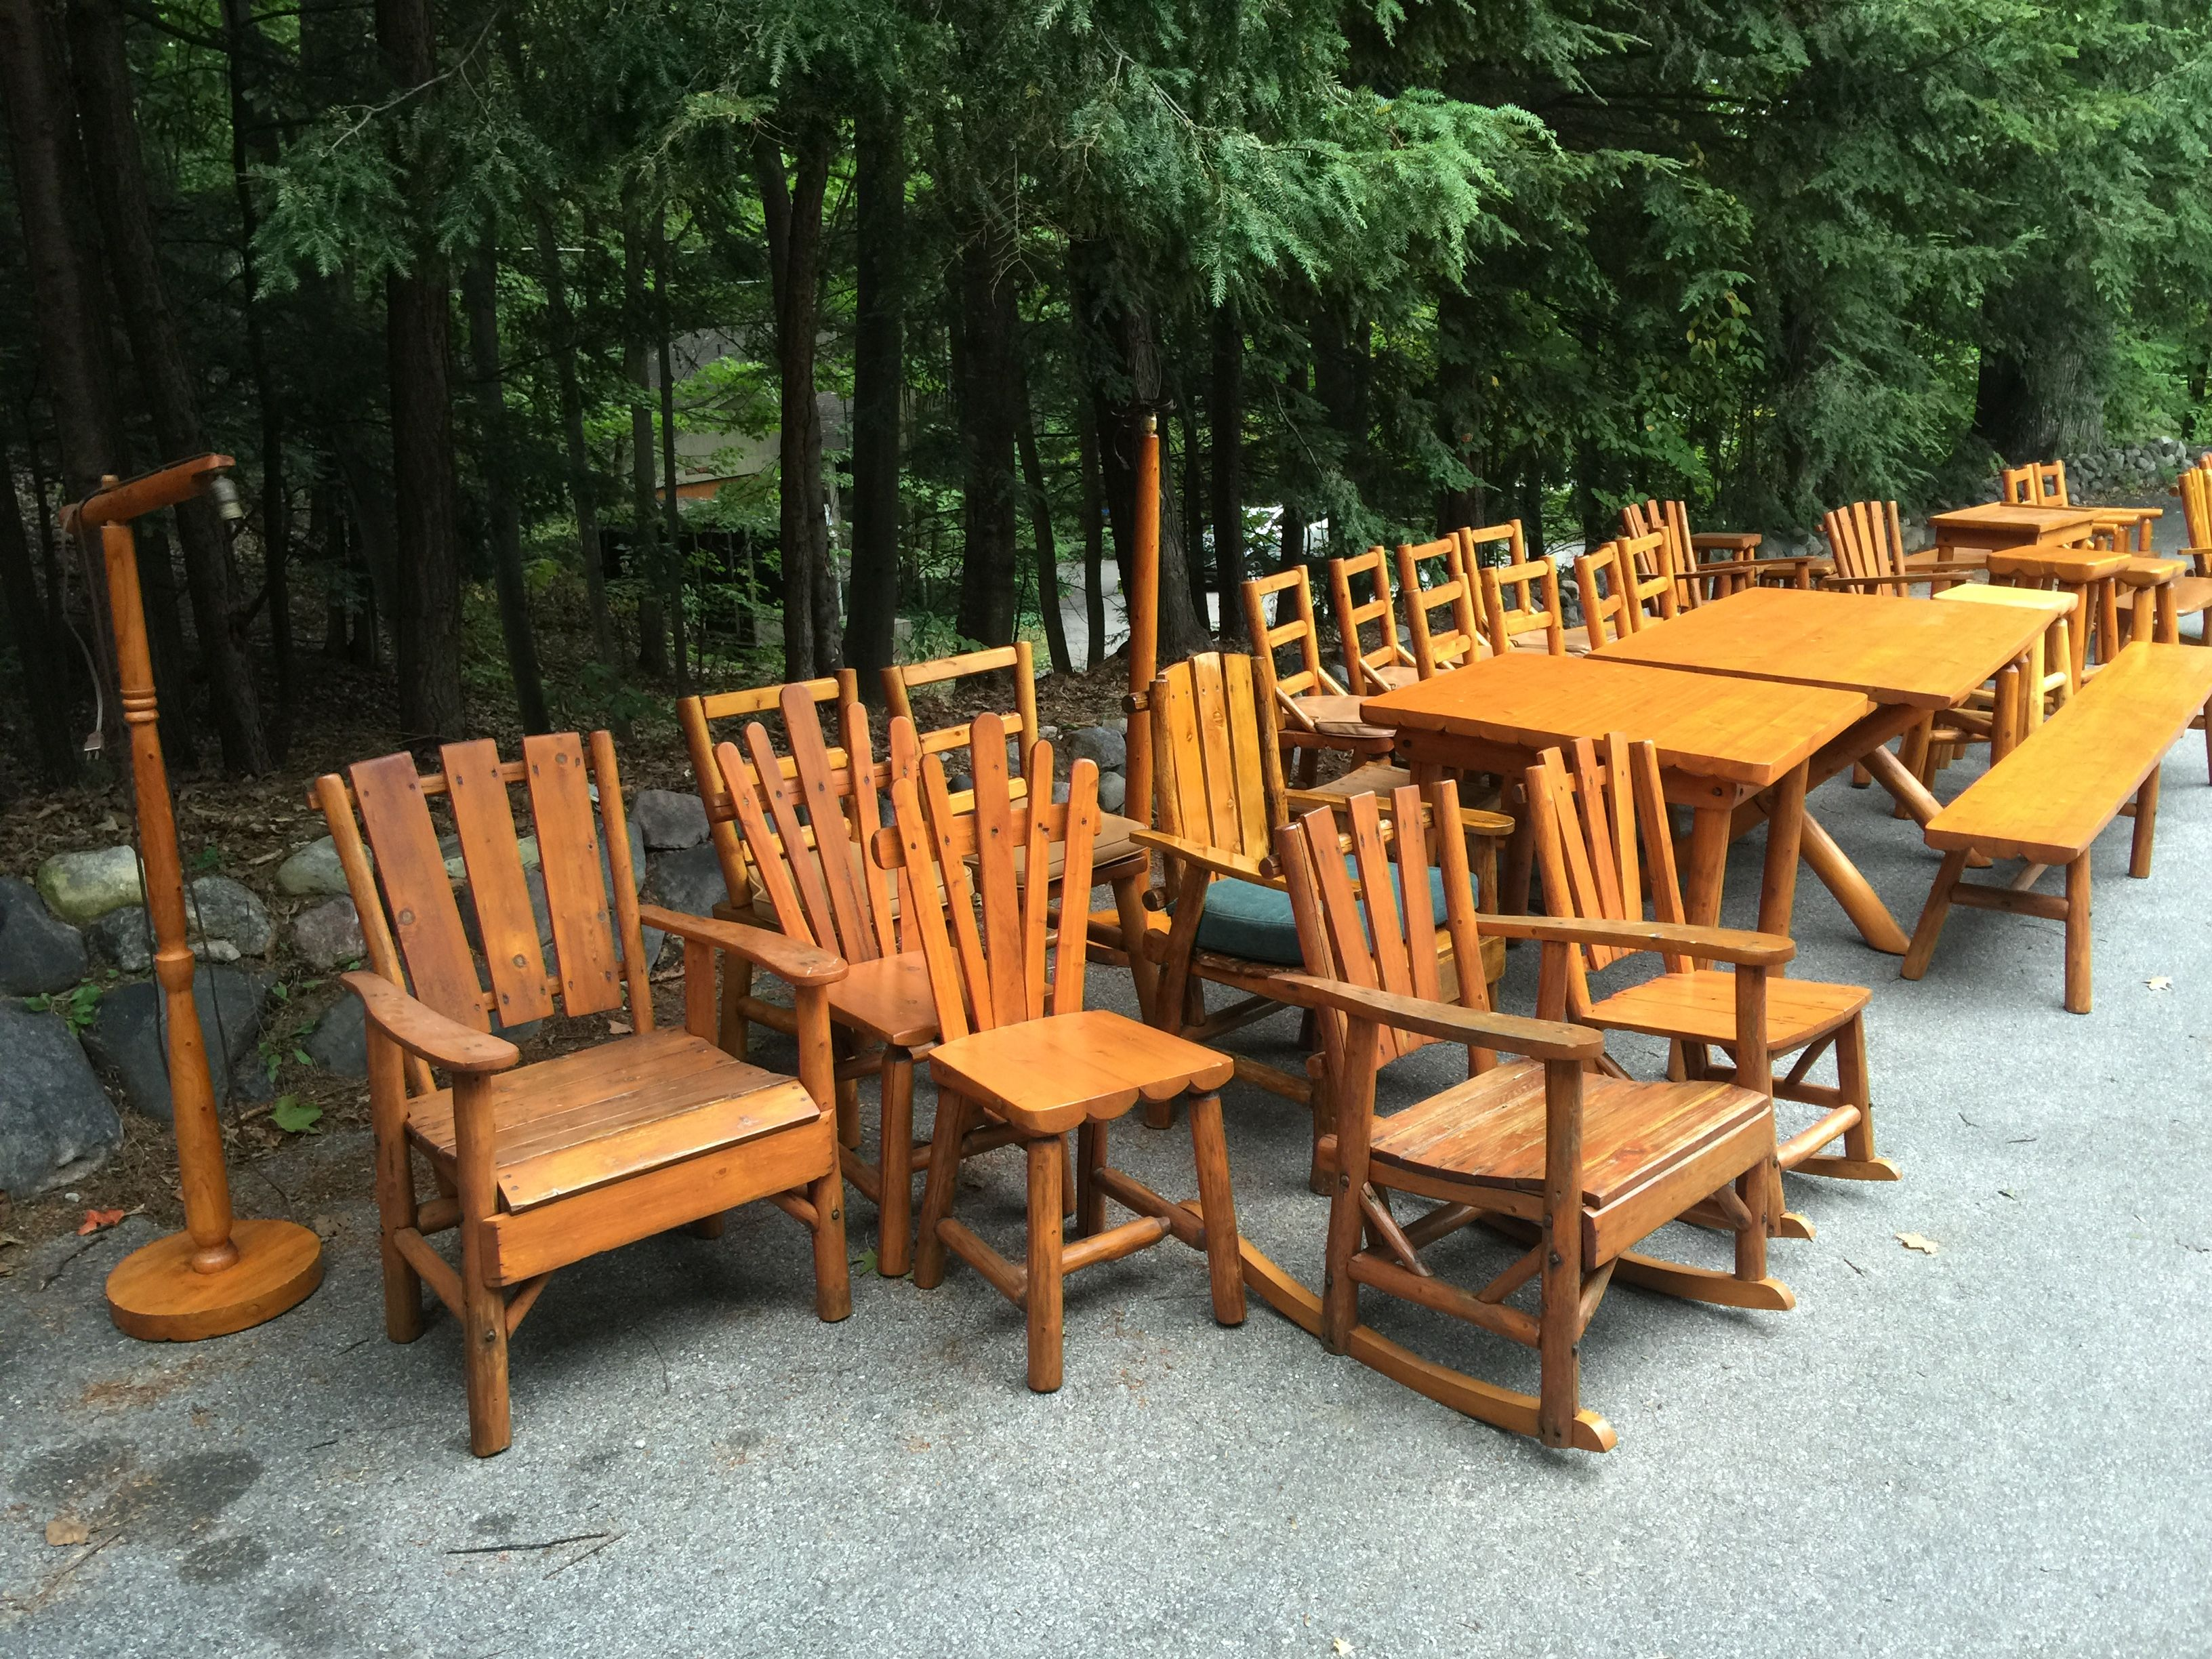 46 pcs of rittenhouse log furniture from a northern michigan waterfront estate new inventory for next years shows available christibys